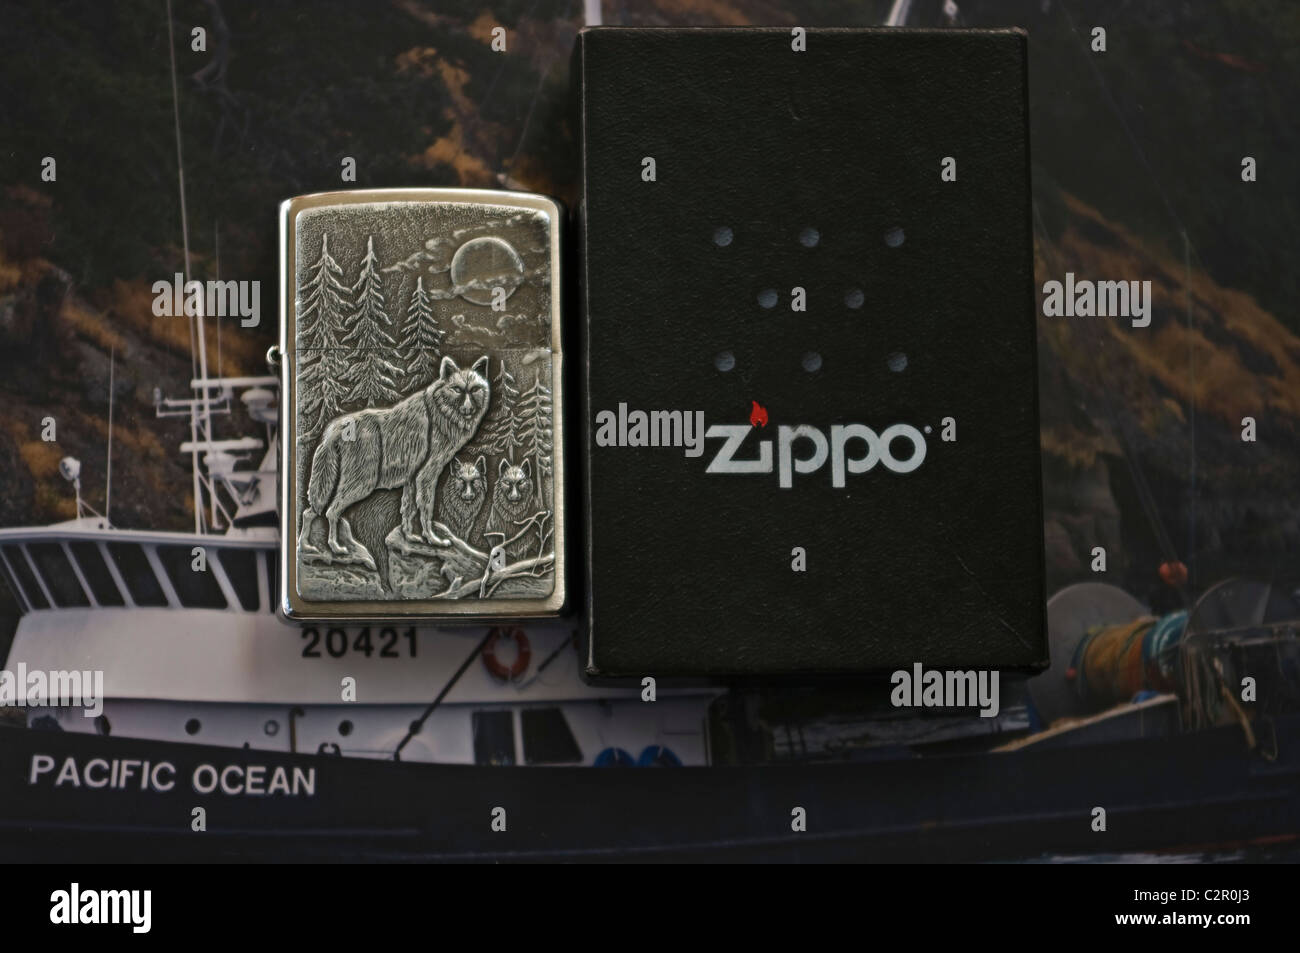 zippo lighter, timber wolf, boat background - Stock Image